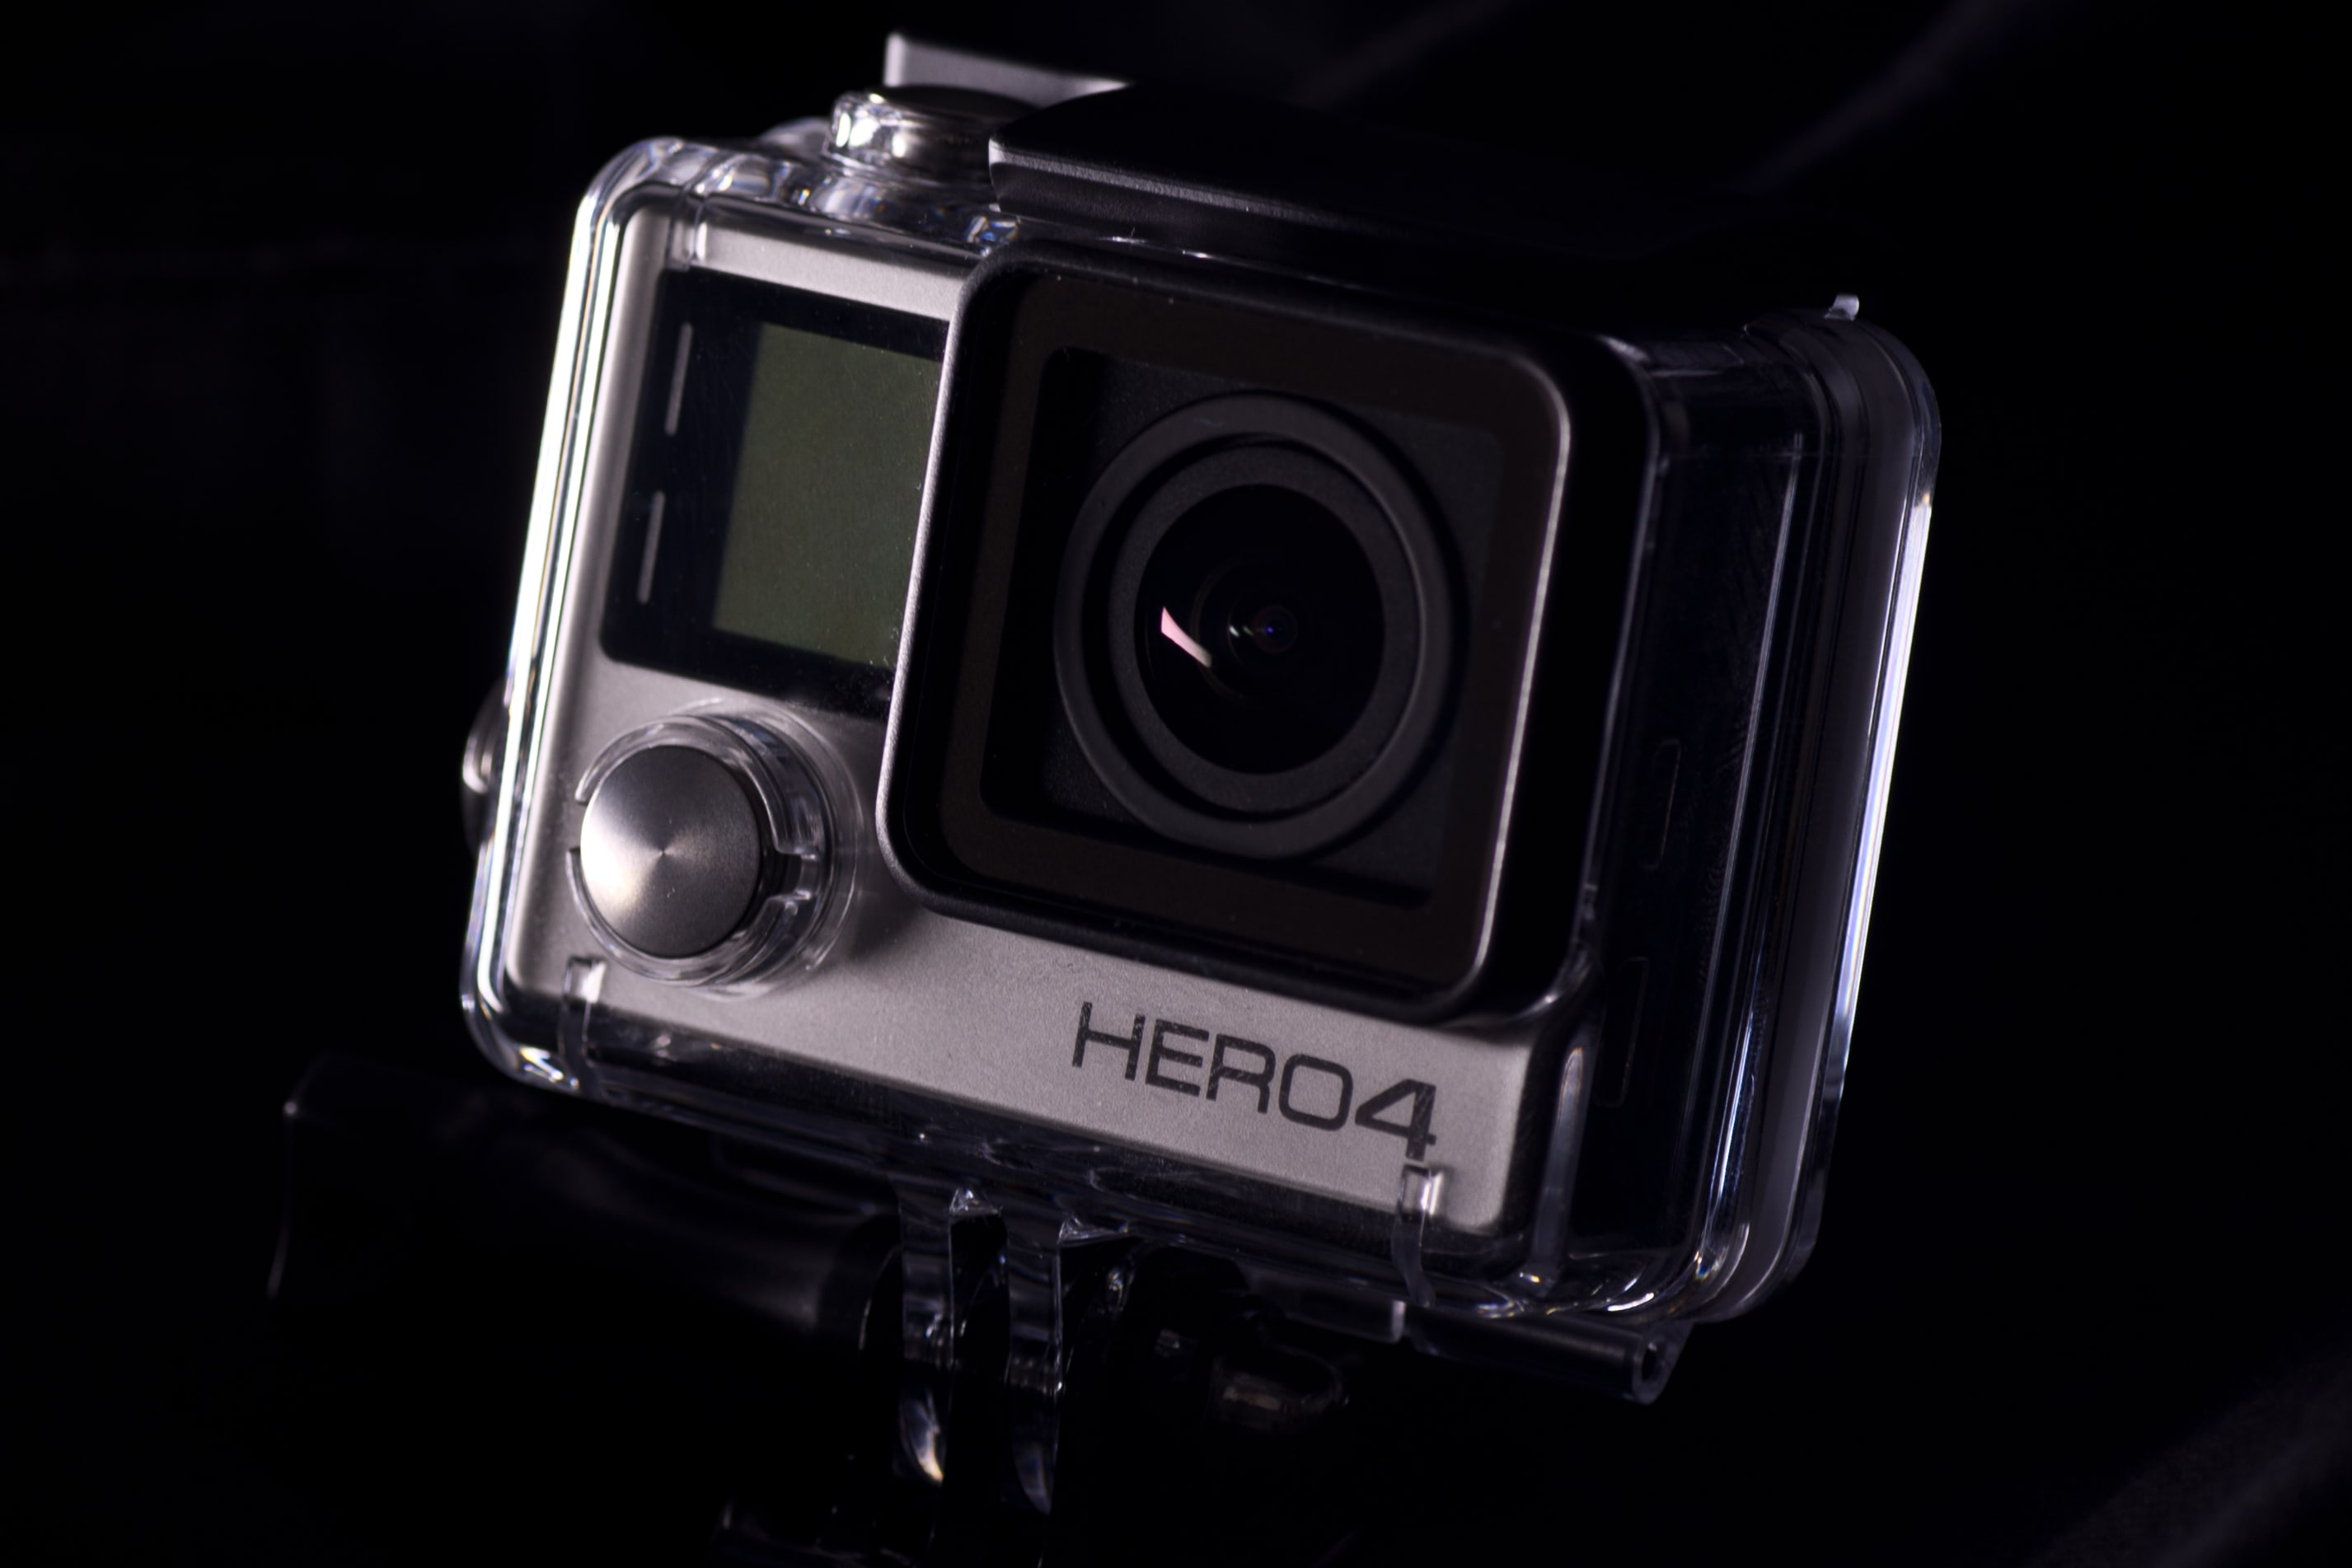 A photograph of the GoPro Hero 4 Silver's case.